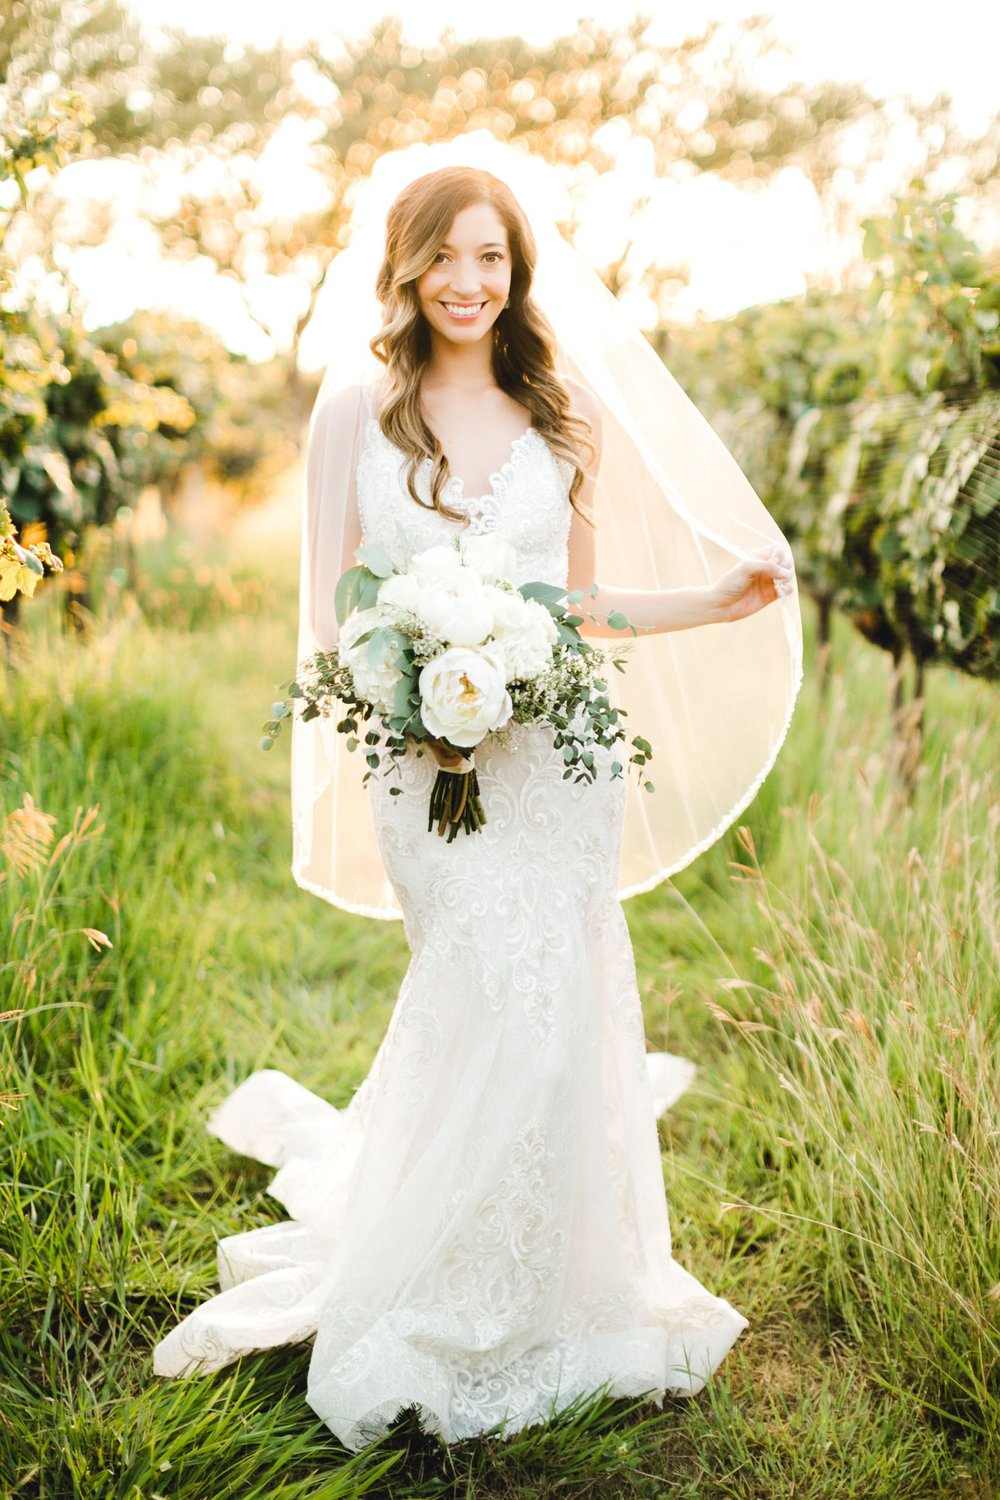 Ashley_Parr_Bridals_ALLEEJ_caprock_winery_romantic_elegant0018.jpg